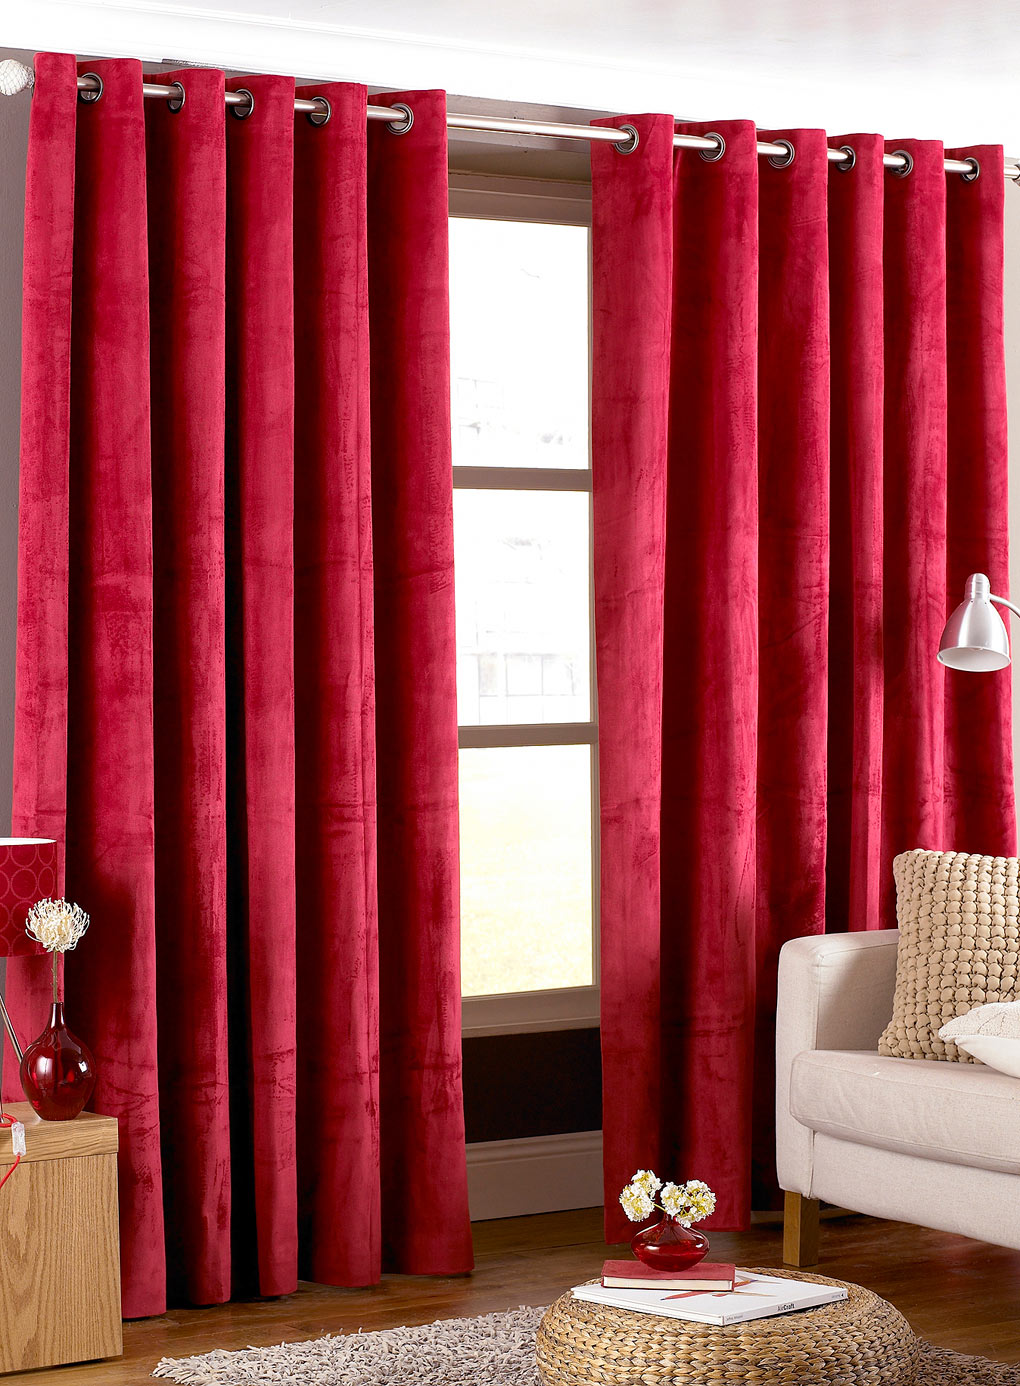 Latest-red-and-gray-striped-curtains 20+ Hottest Curtain Designs for 2019